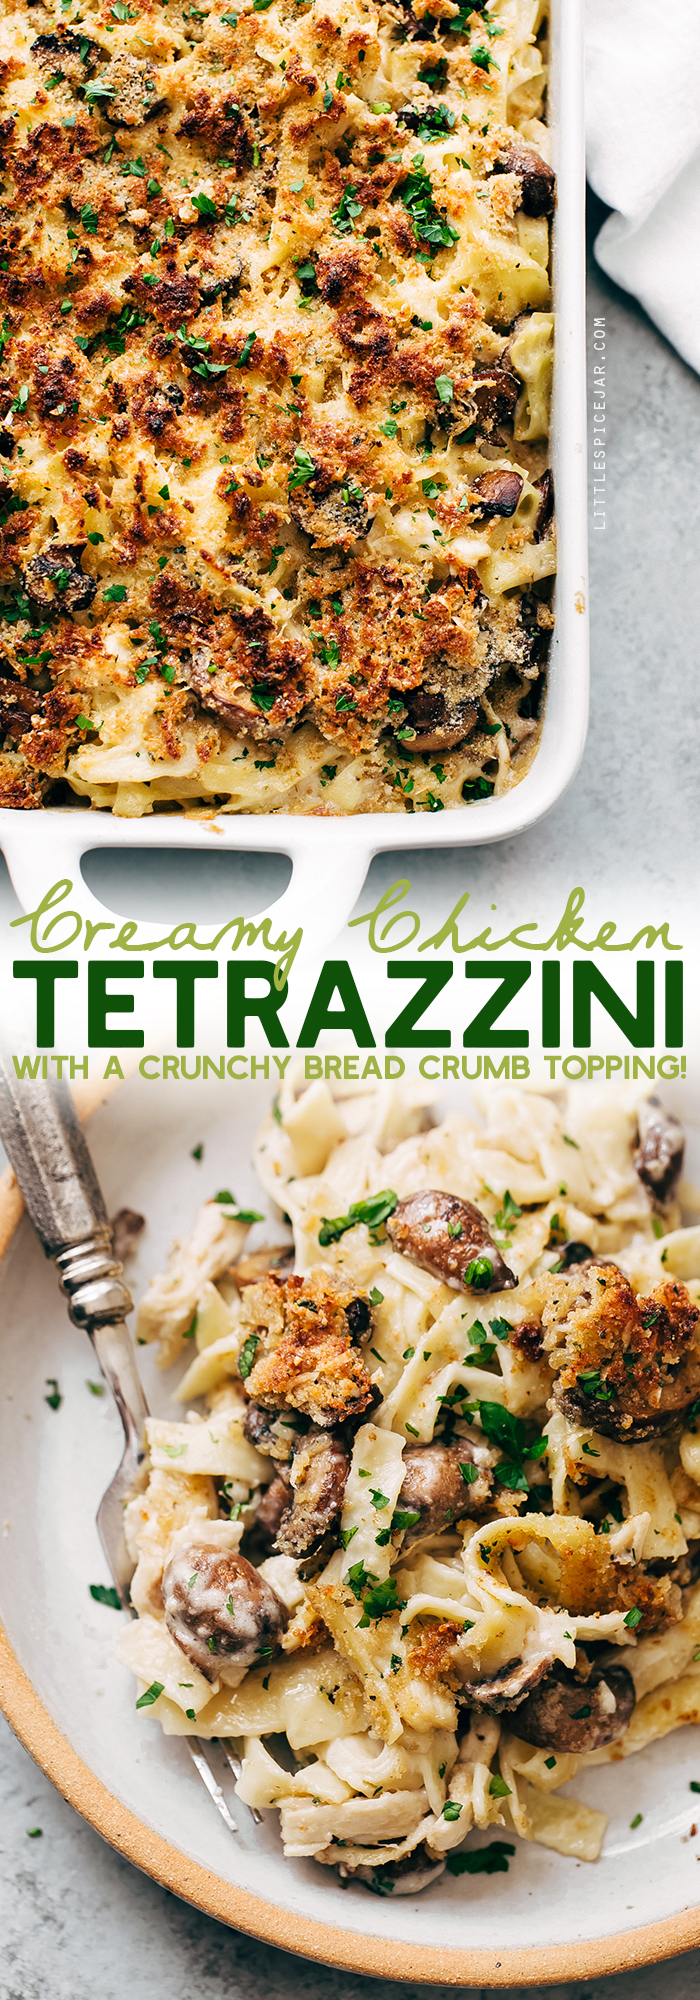 Cozy Creamy Chicken Tetrazzini - learn how to make the best chicken tetrazzini ever! A creamy white sauce with tons of shredded chicken, mushrooms, and cheese! #chickentetrazzini #turkeytetrazzini #noodlebake #casserole #easter #tetrazzini | LIttlespicejar.com